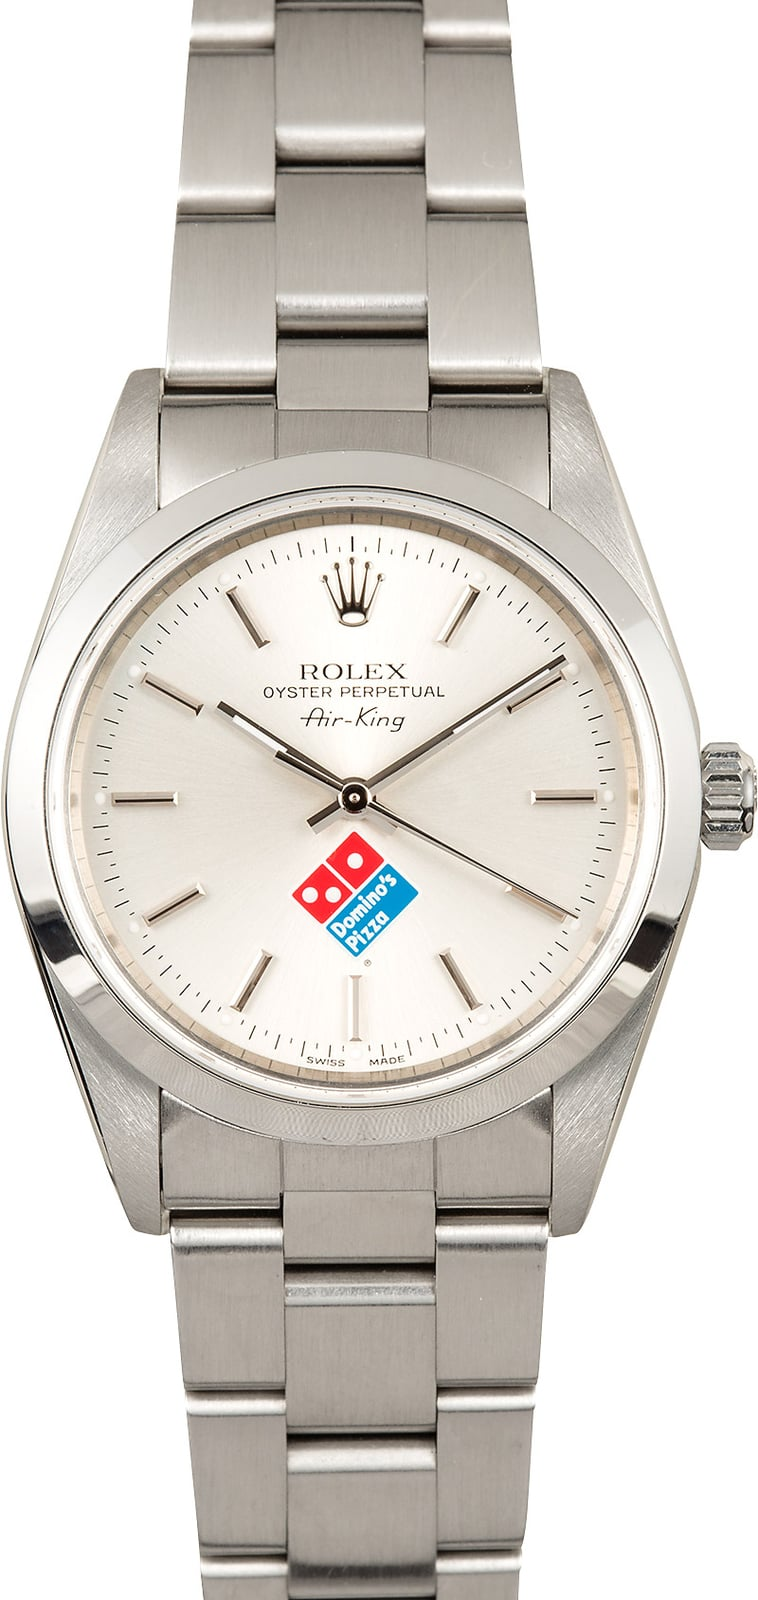 Rolex air king 14000 dominos pizza dial for Rolex air king